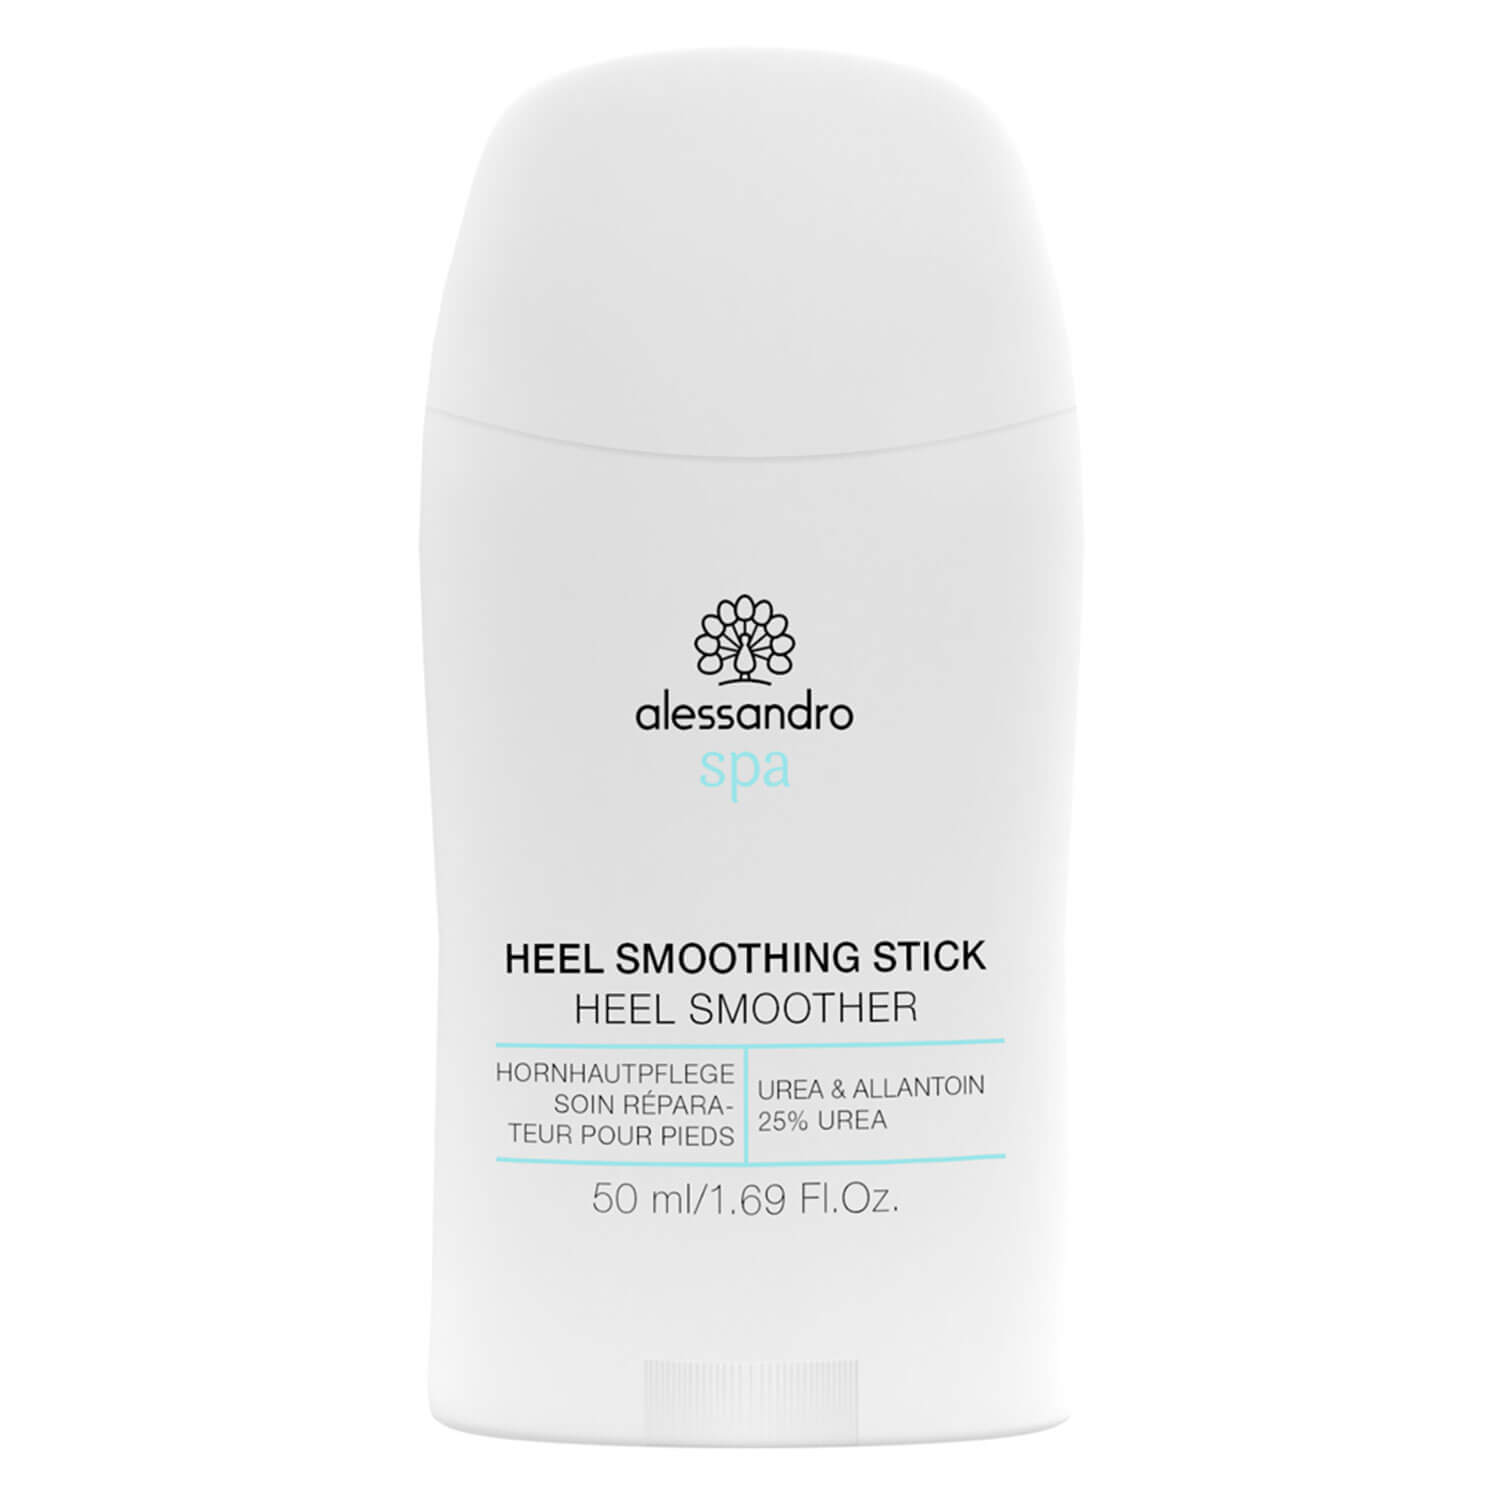 Alessandro Spa - Foot Heel Smoothing Stick - 50ml